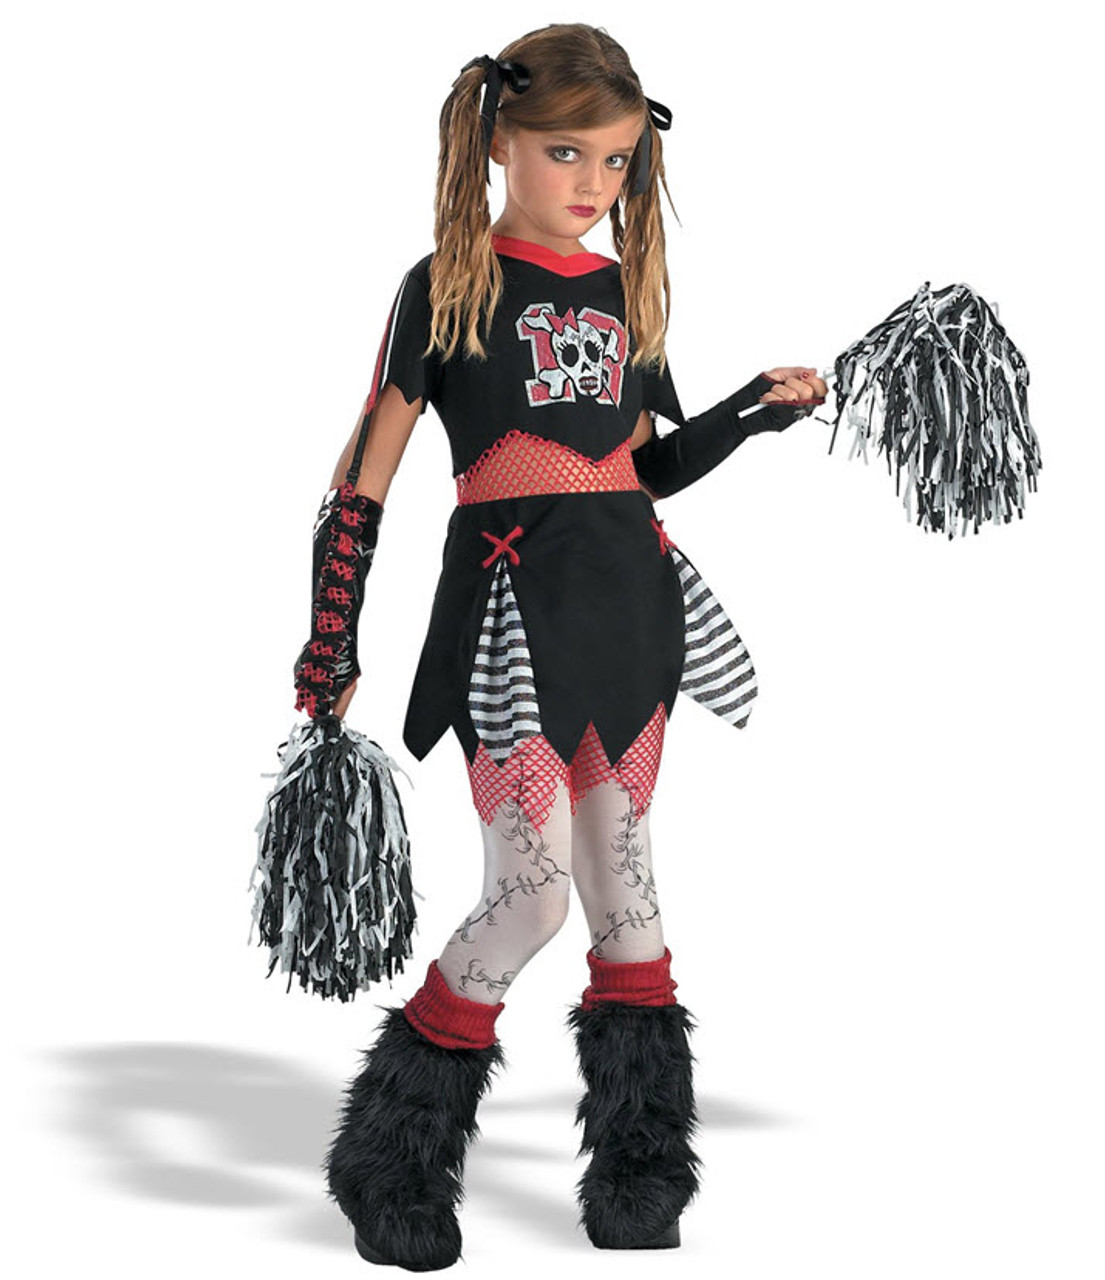 Girlu0027s Gothic Cheerleader Costume  sc 1 st  Halloween Express & Girlu0027s Gothic Cheerleader Costume - Halloween Express